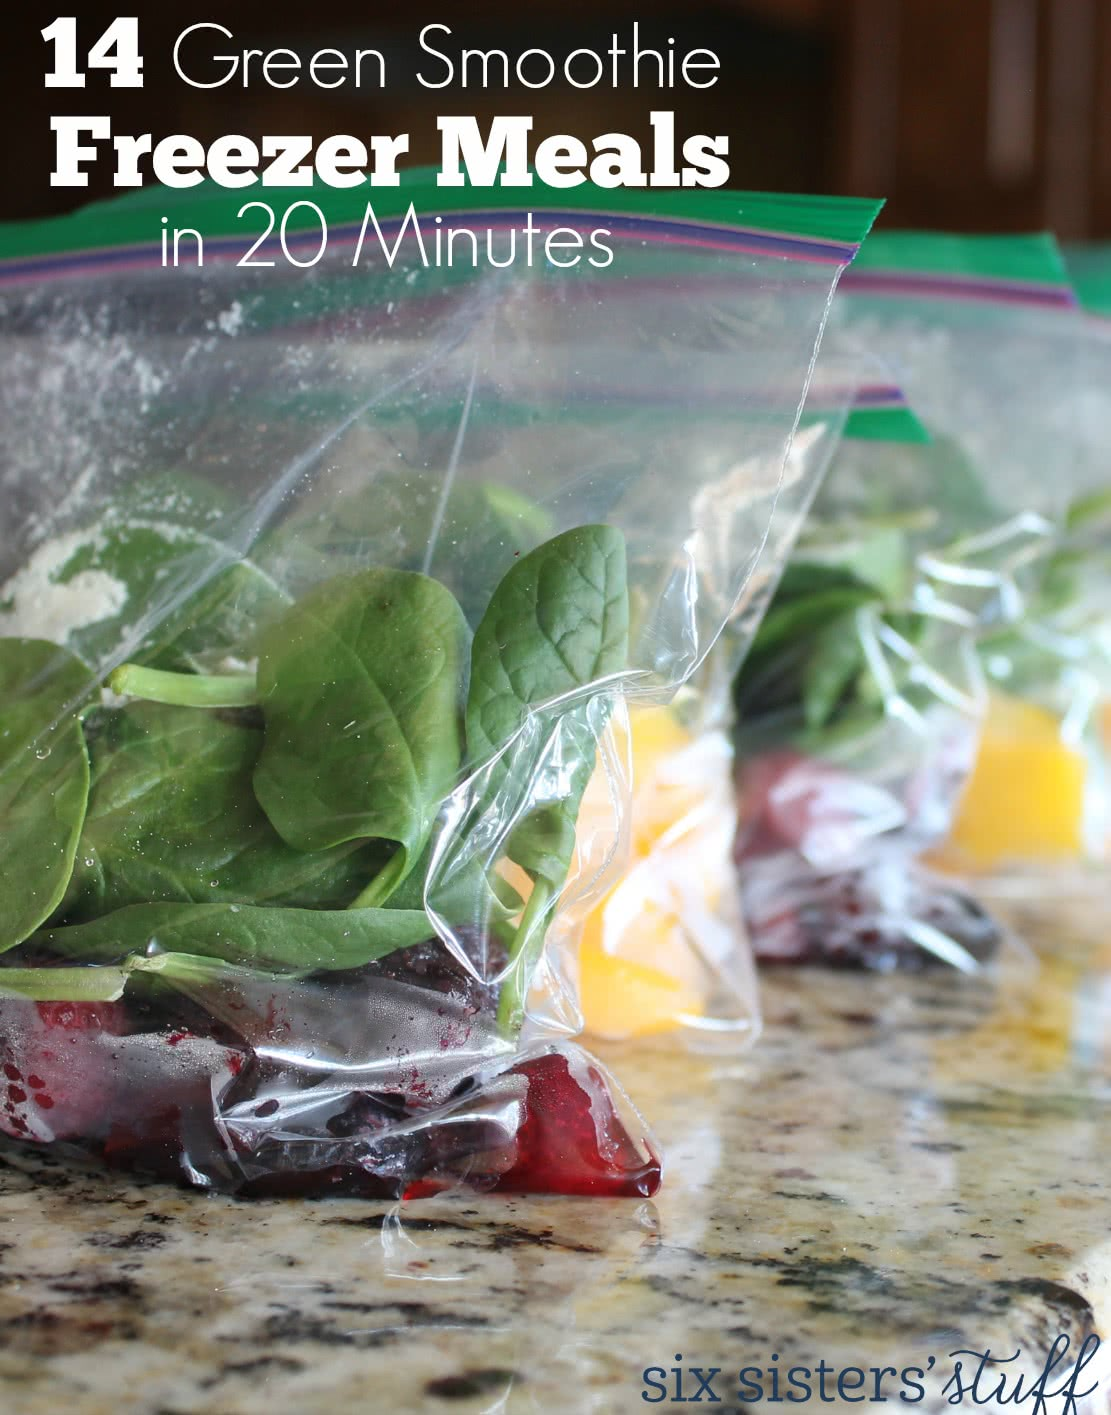 14 Green Smoothie Freezer Meals in 20 Minutes